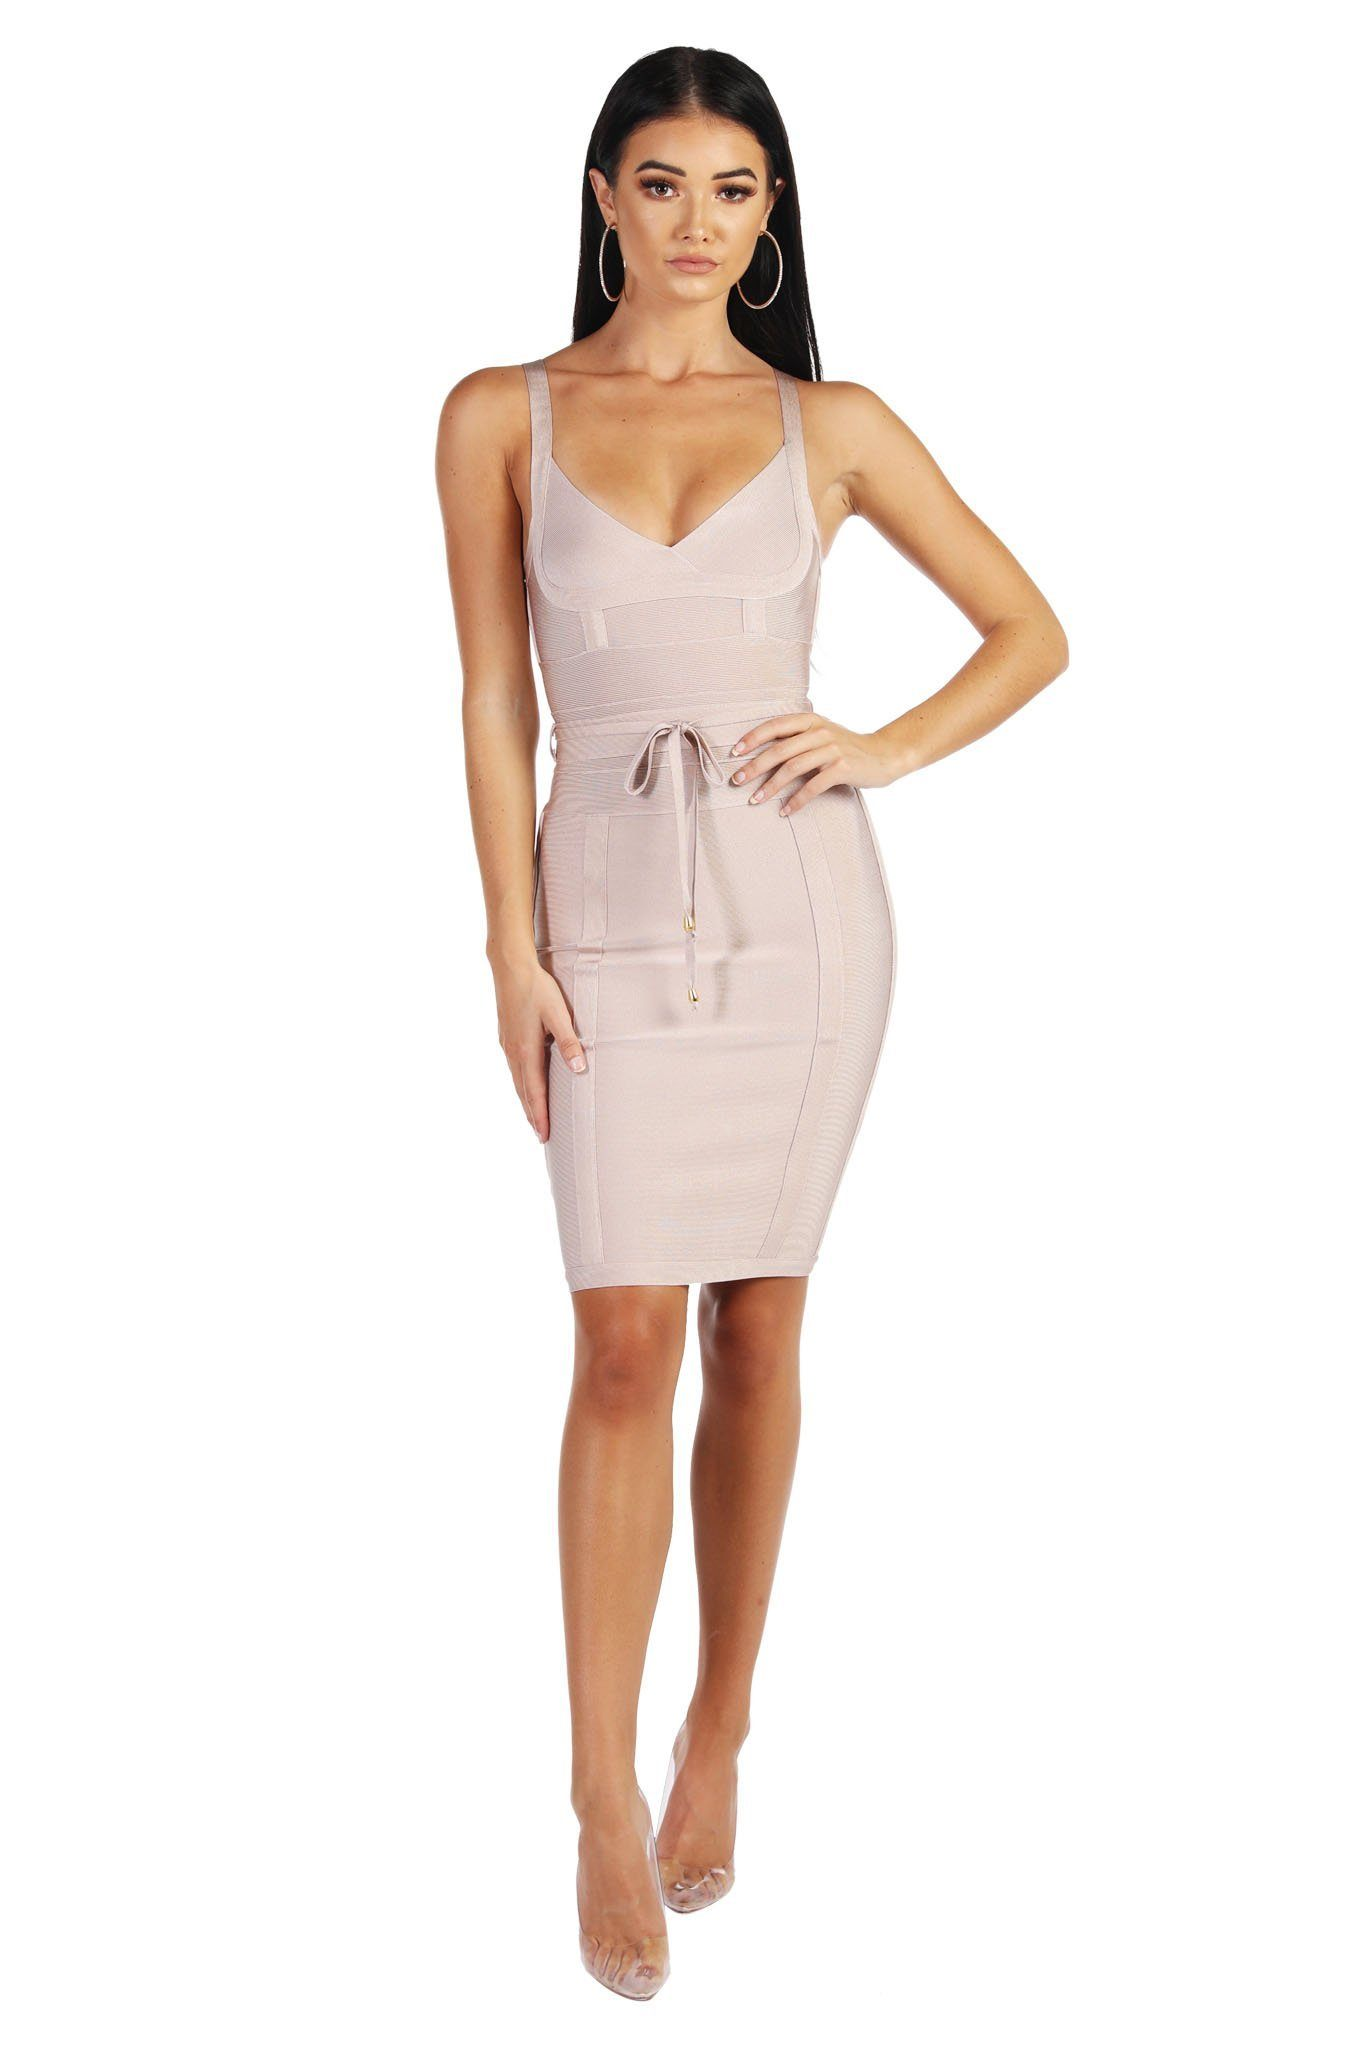 Nude colored mini sleeveless bandage dress with thin shoulder straps, thin removable belt, and full-length back zipper